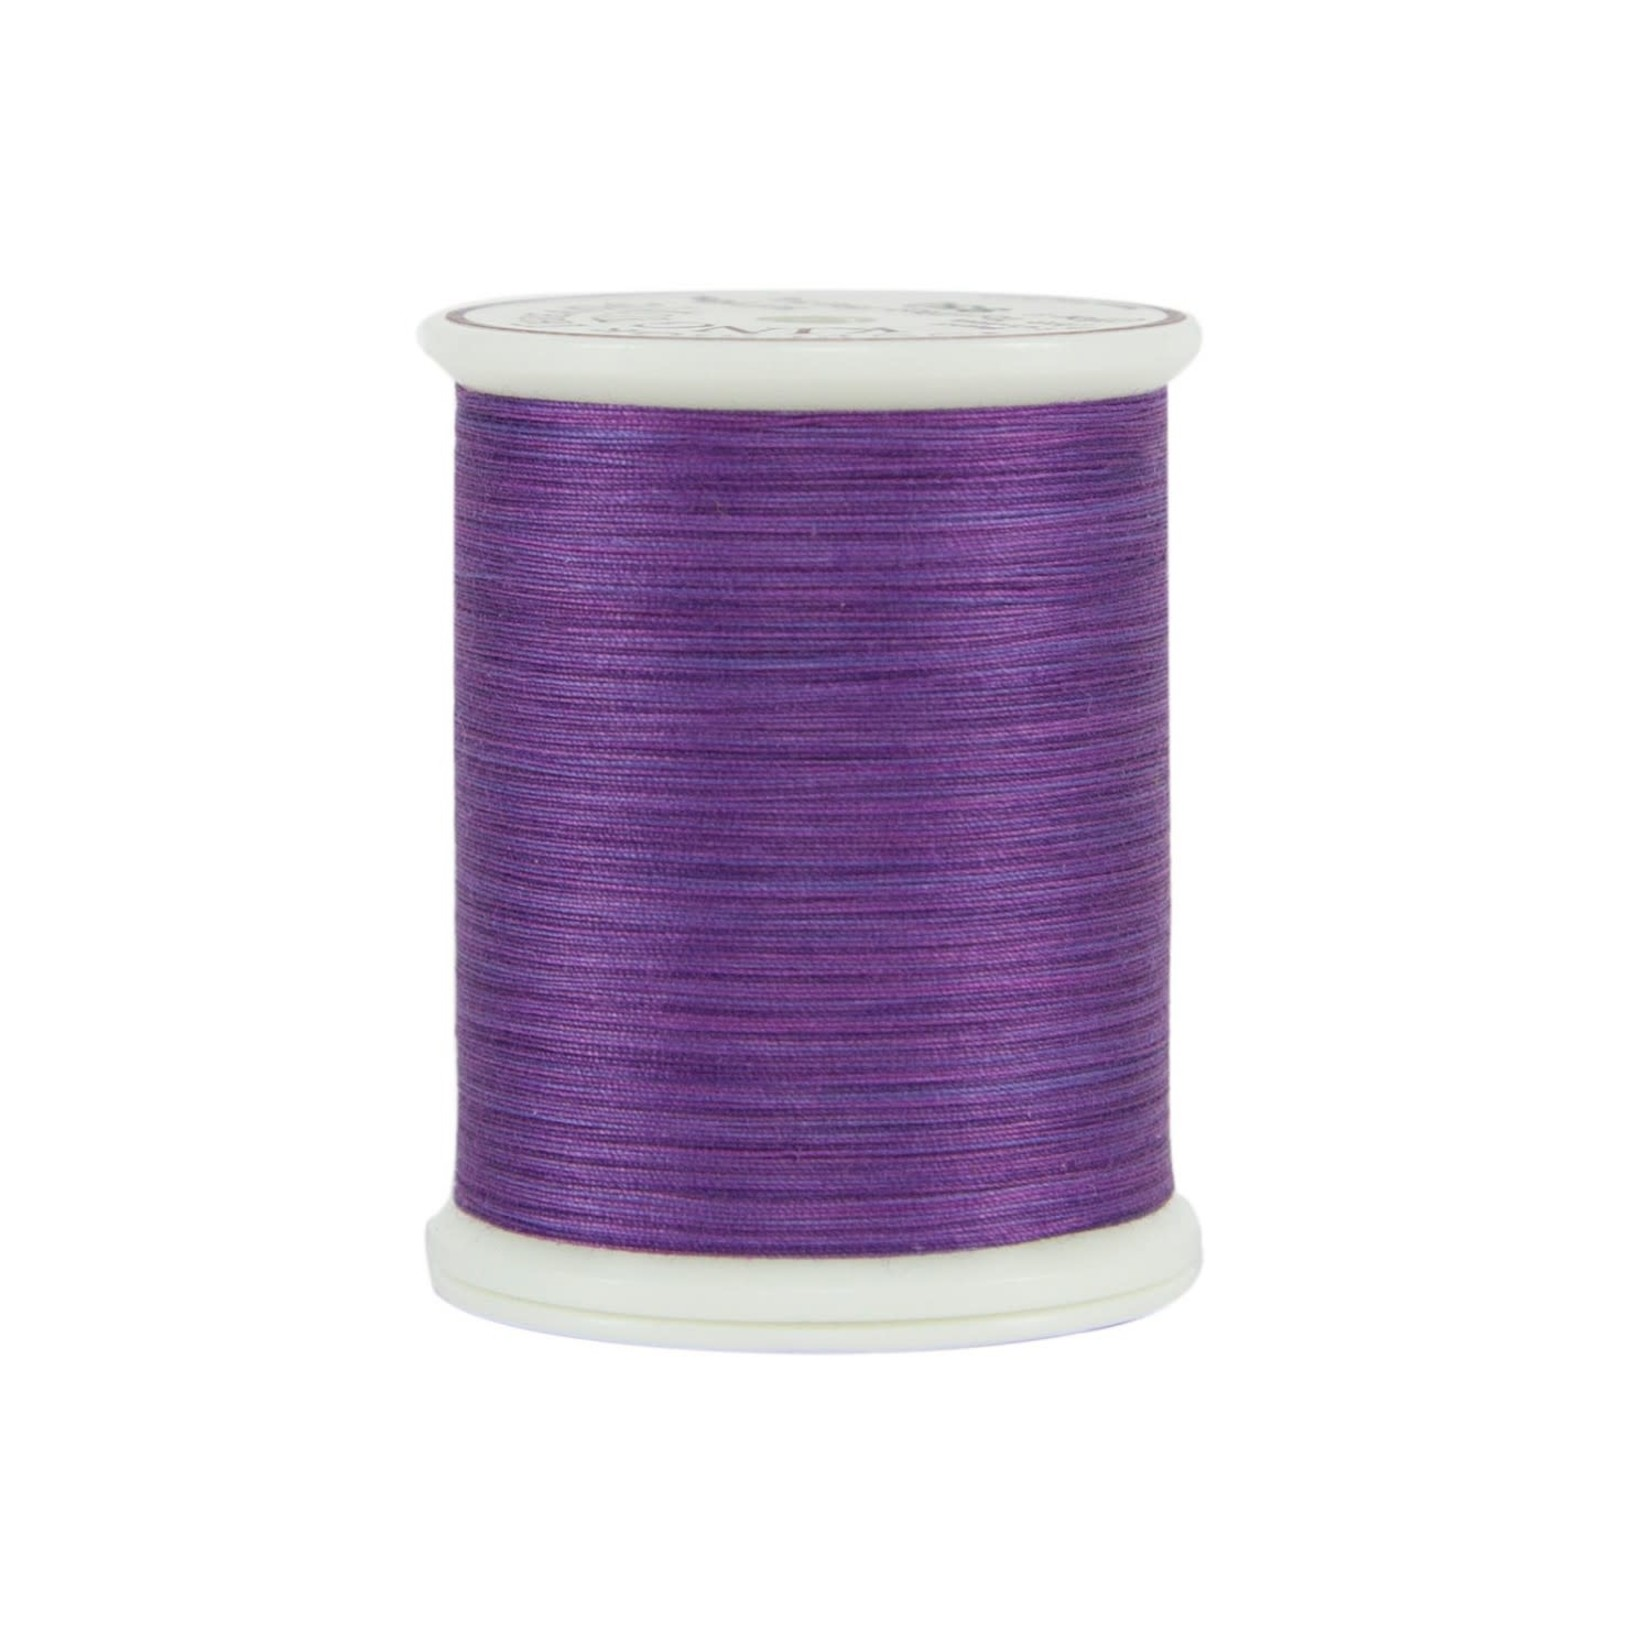 Superior Threads King Tut - #40 - 457 m - 0950 Berry Patch